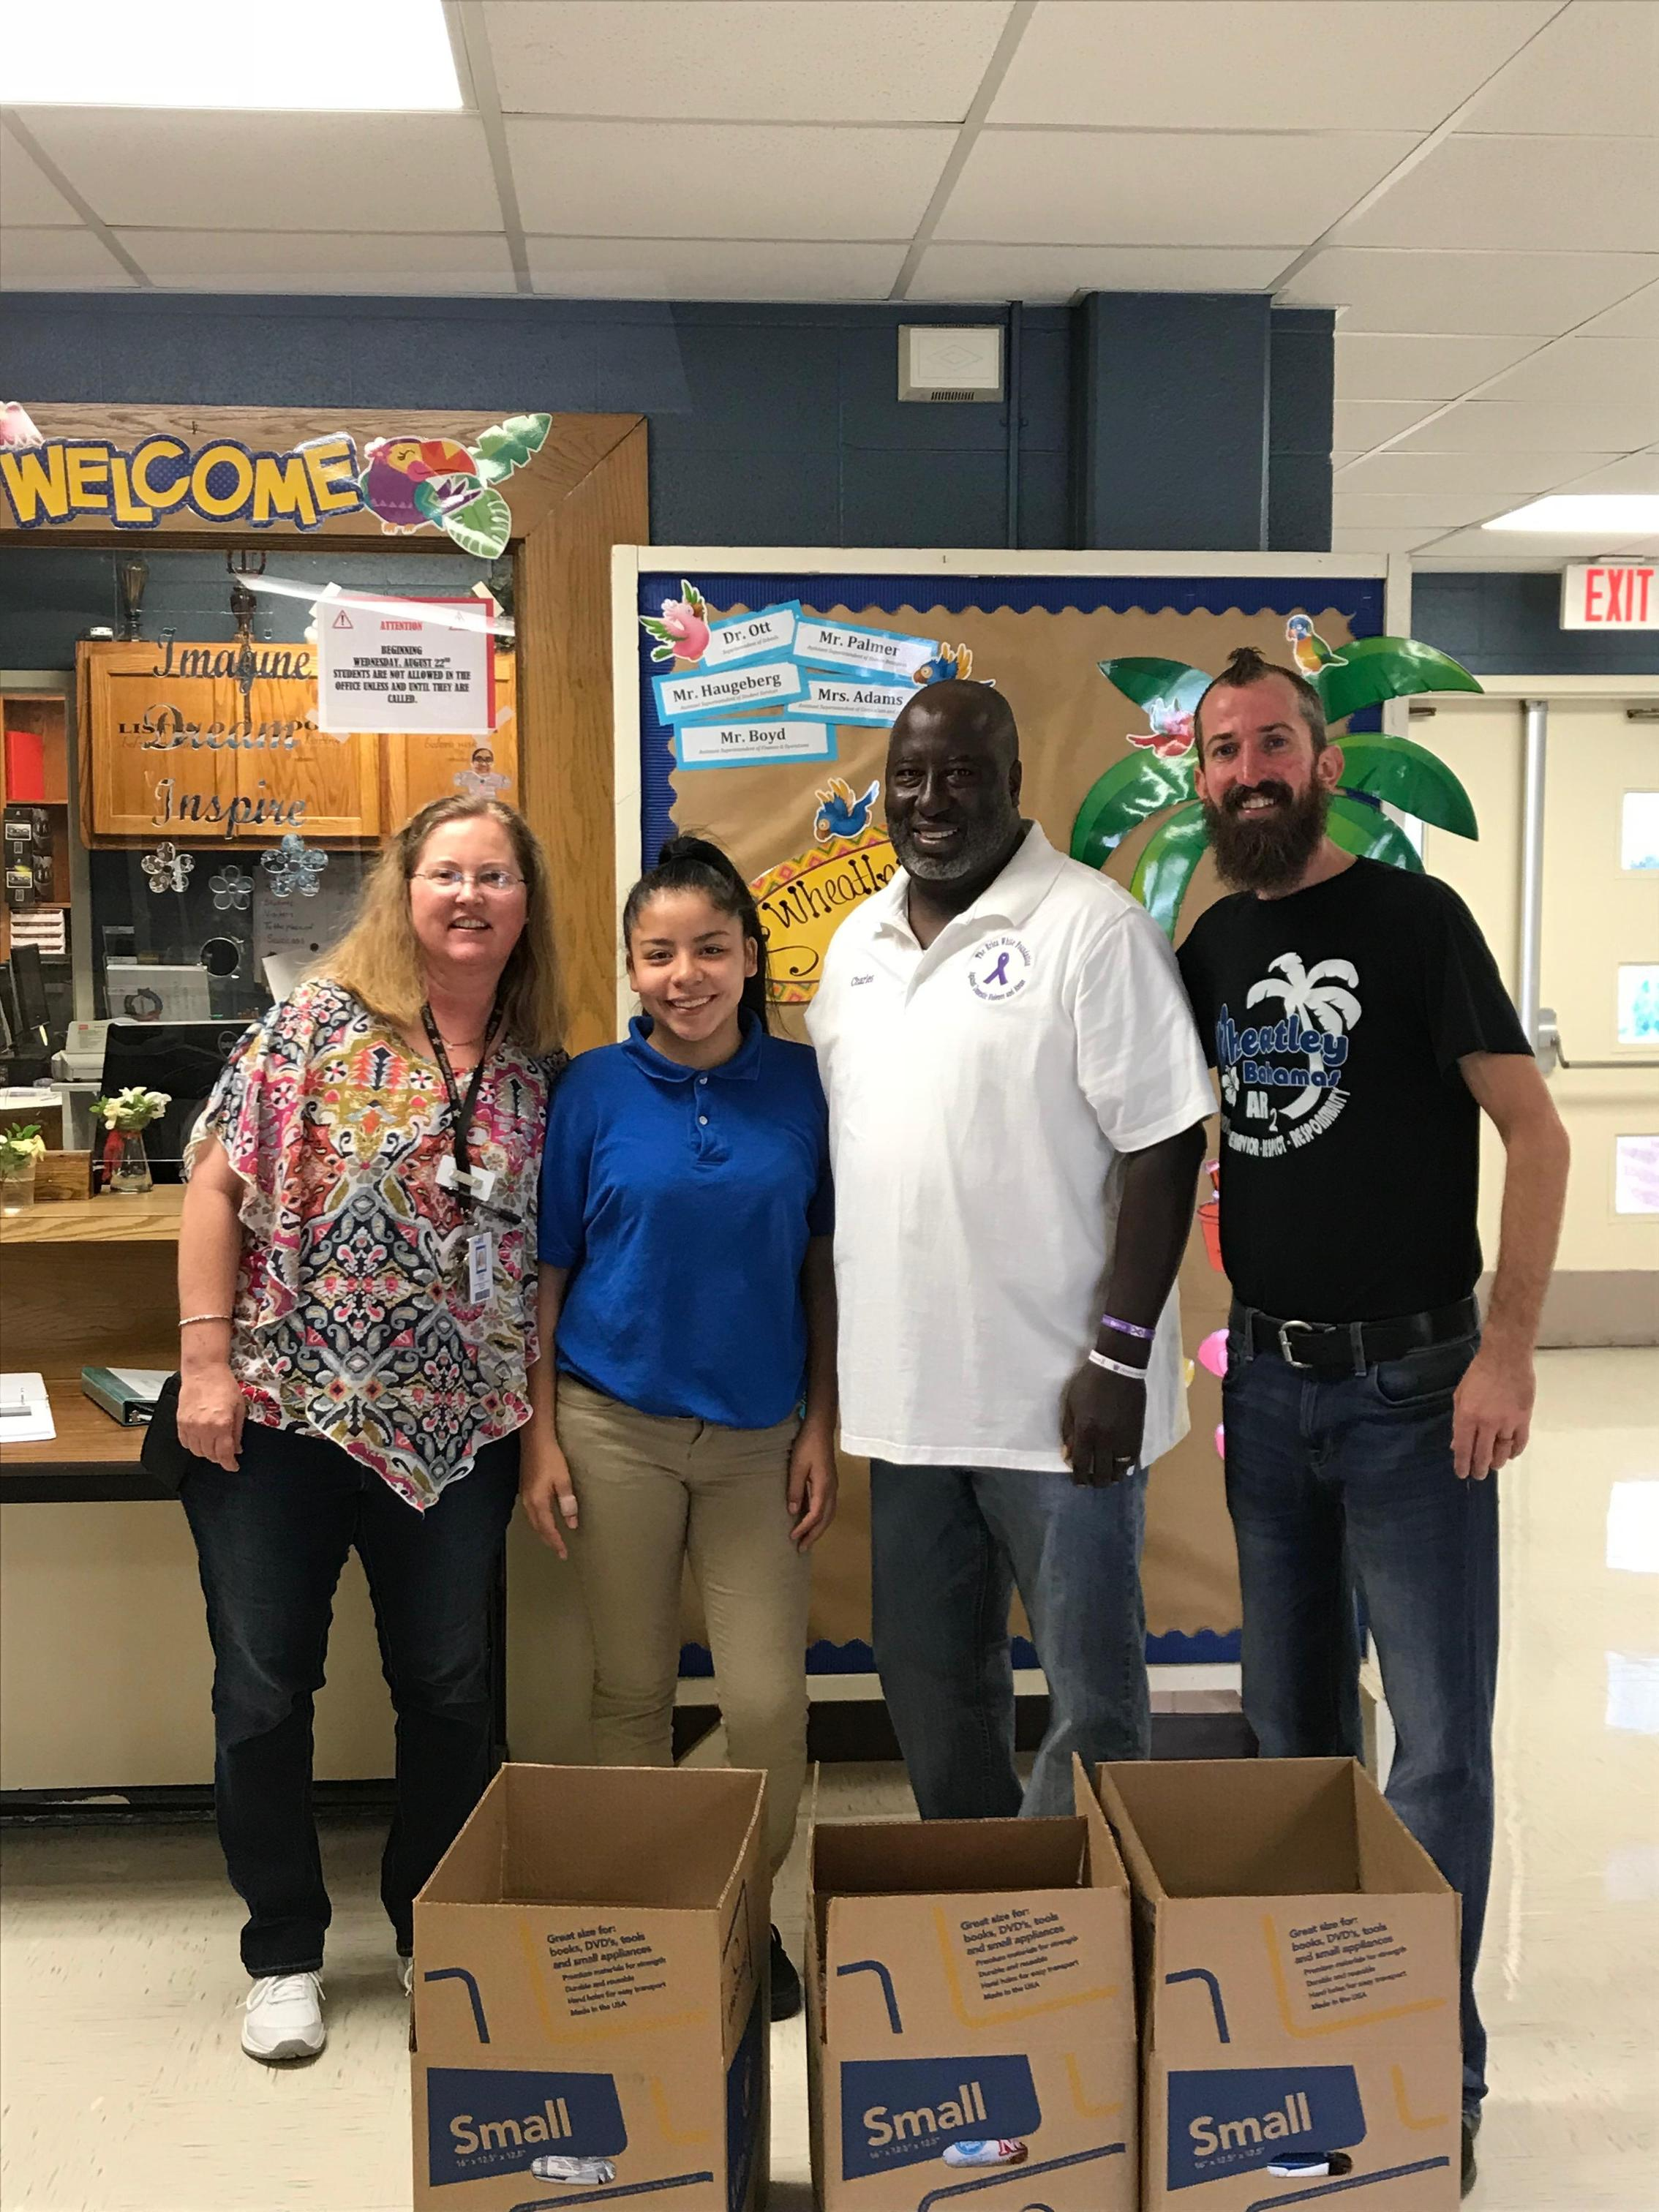 Ms. Stein, Wheatley student, Mr. Shores Mr. Oliver image